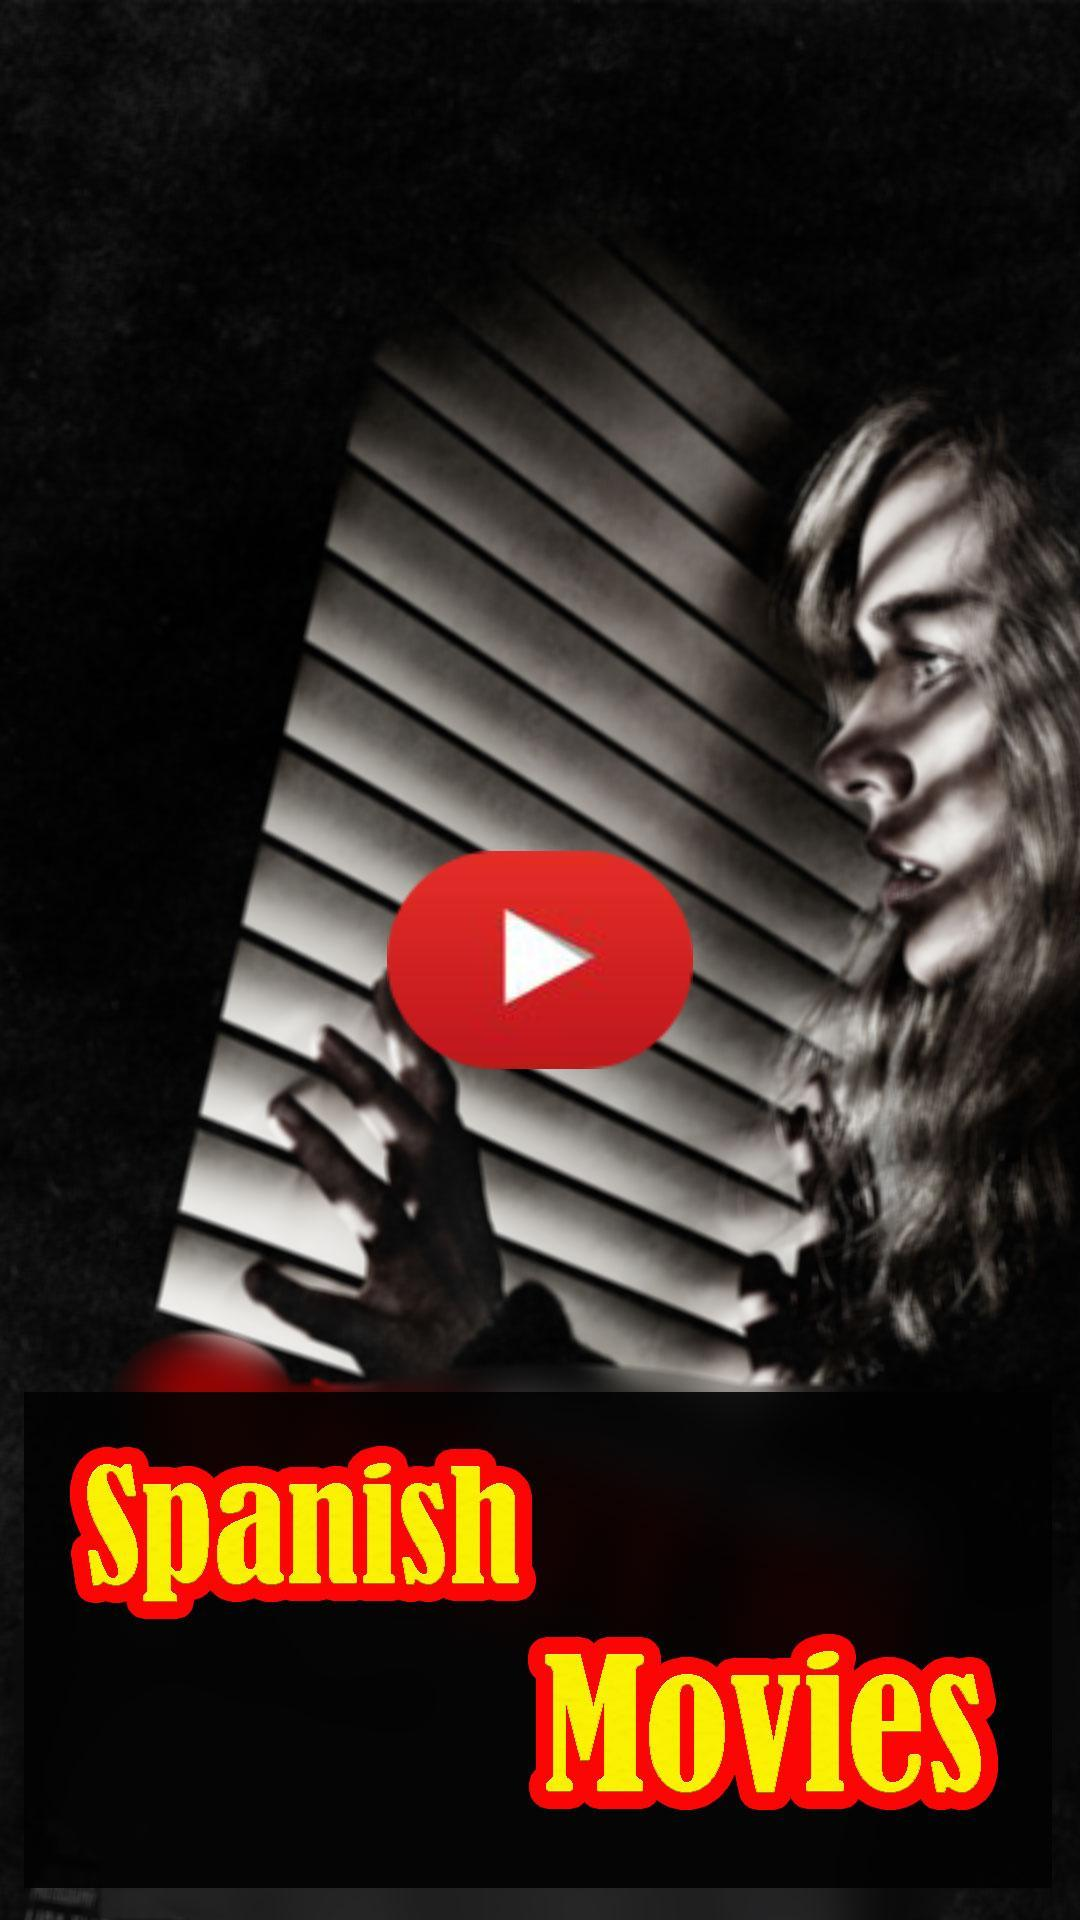 HD Spanish Movies 2019 ( free Spanish Movies) for Android